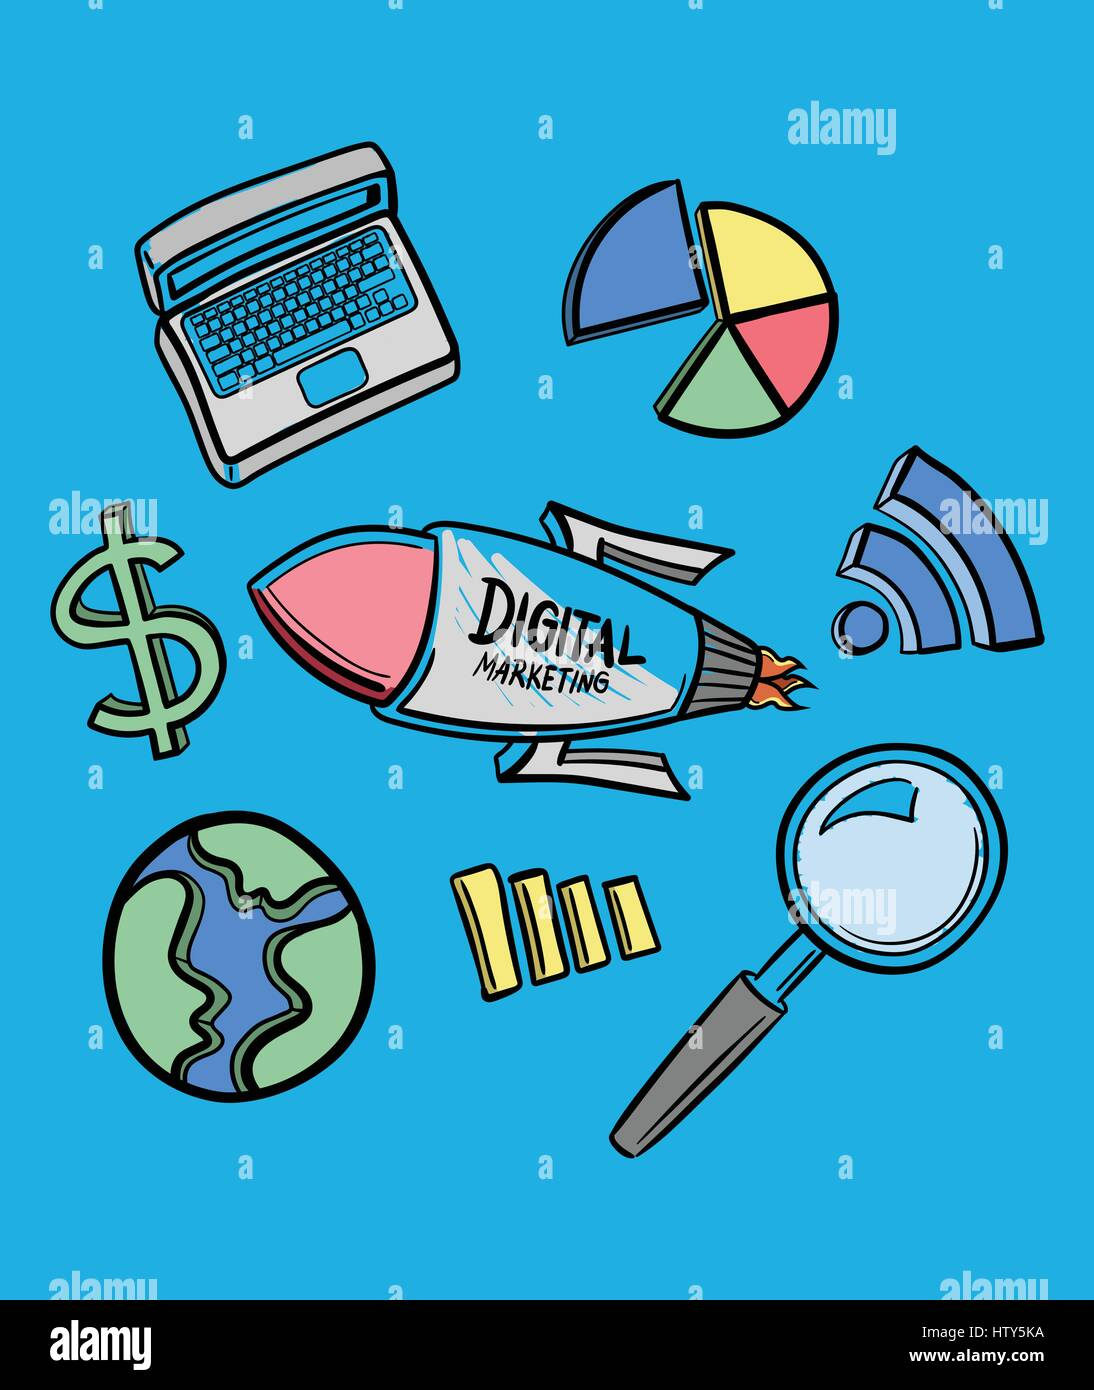 Vector icon of digital marketing against blue background - Stock Image